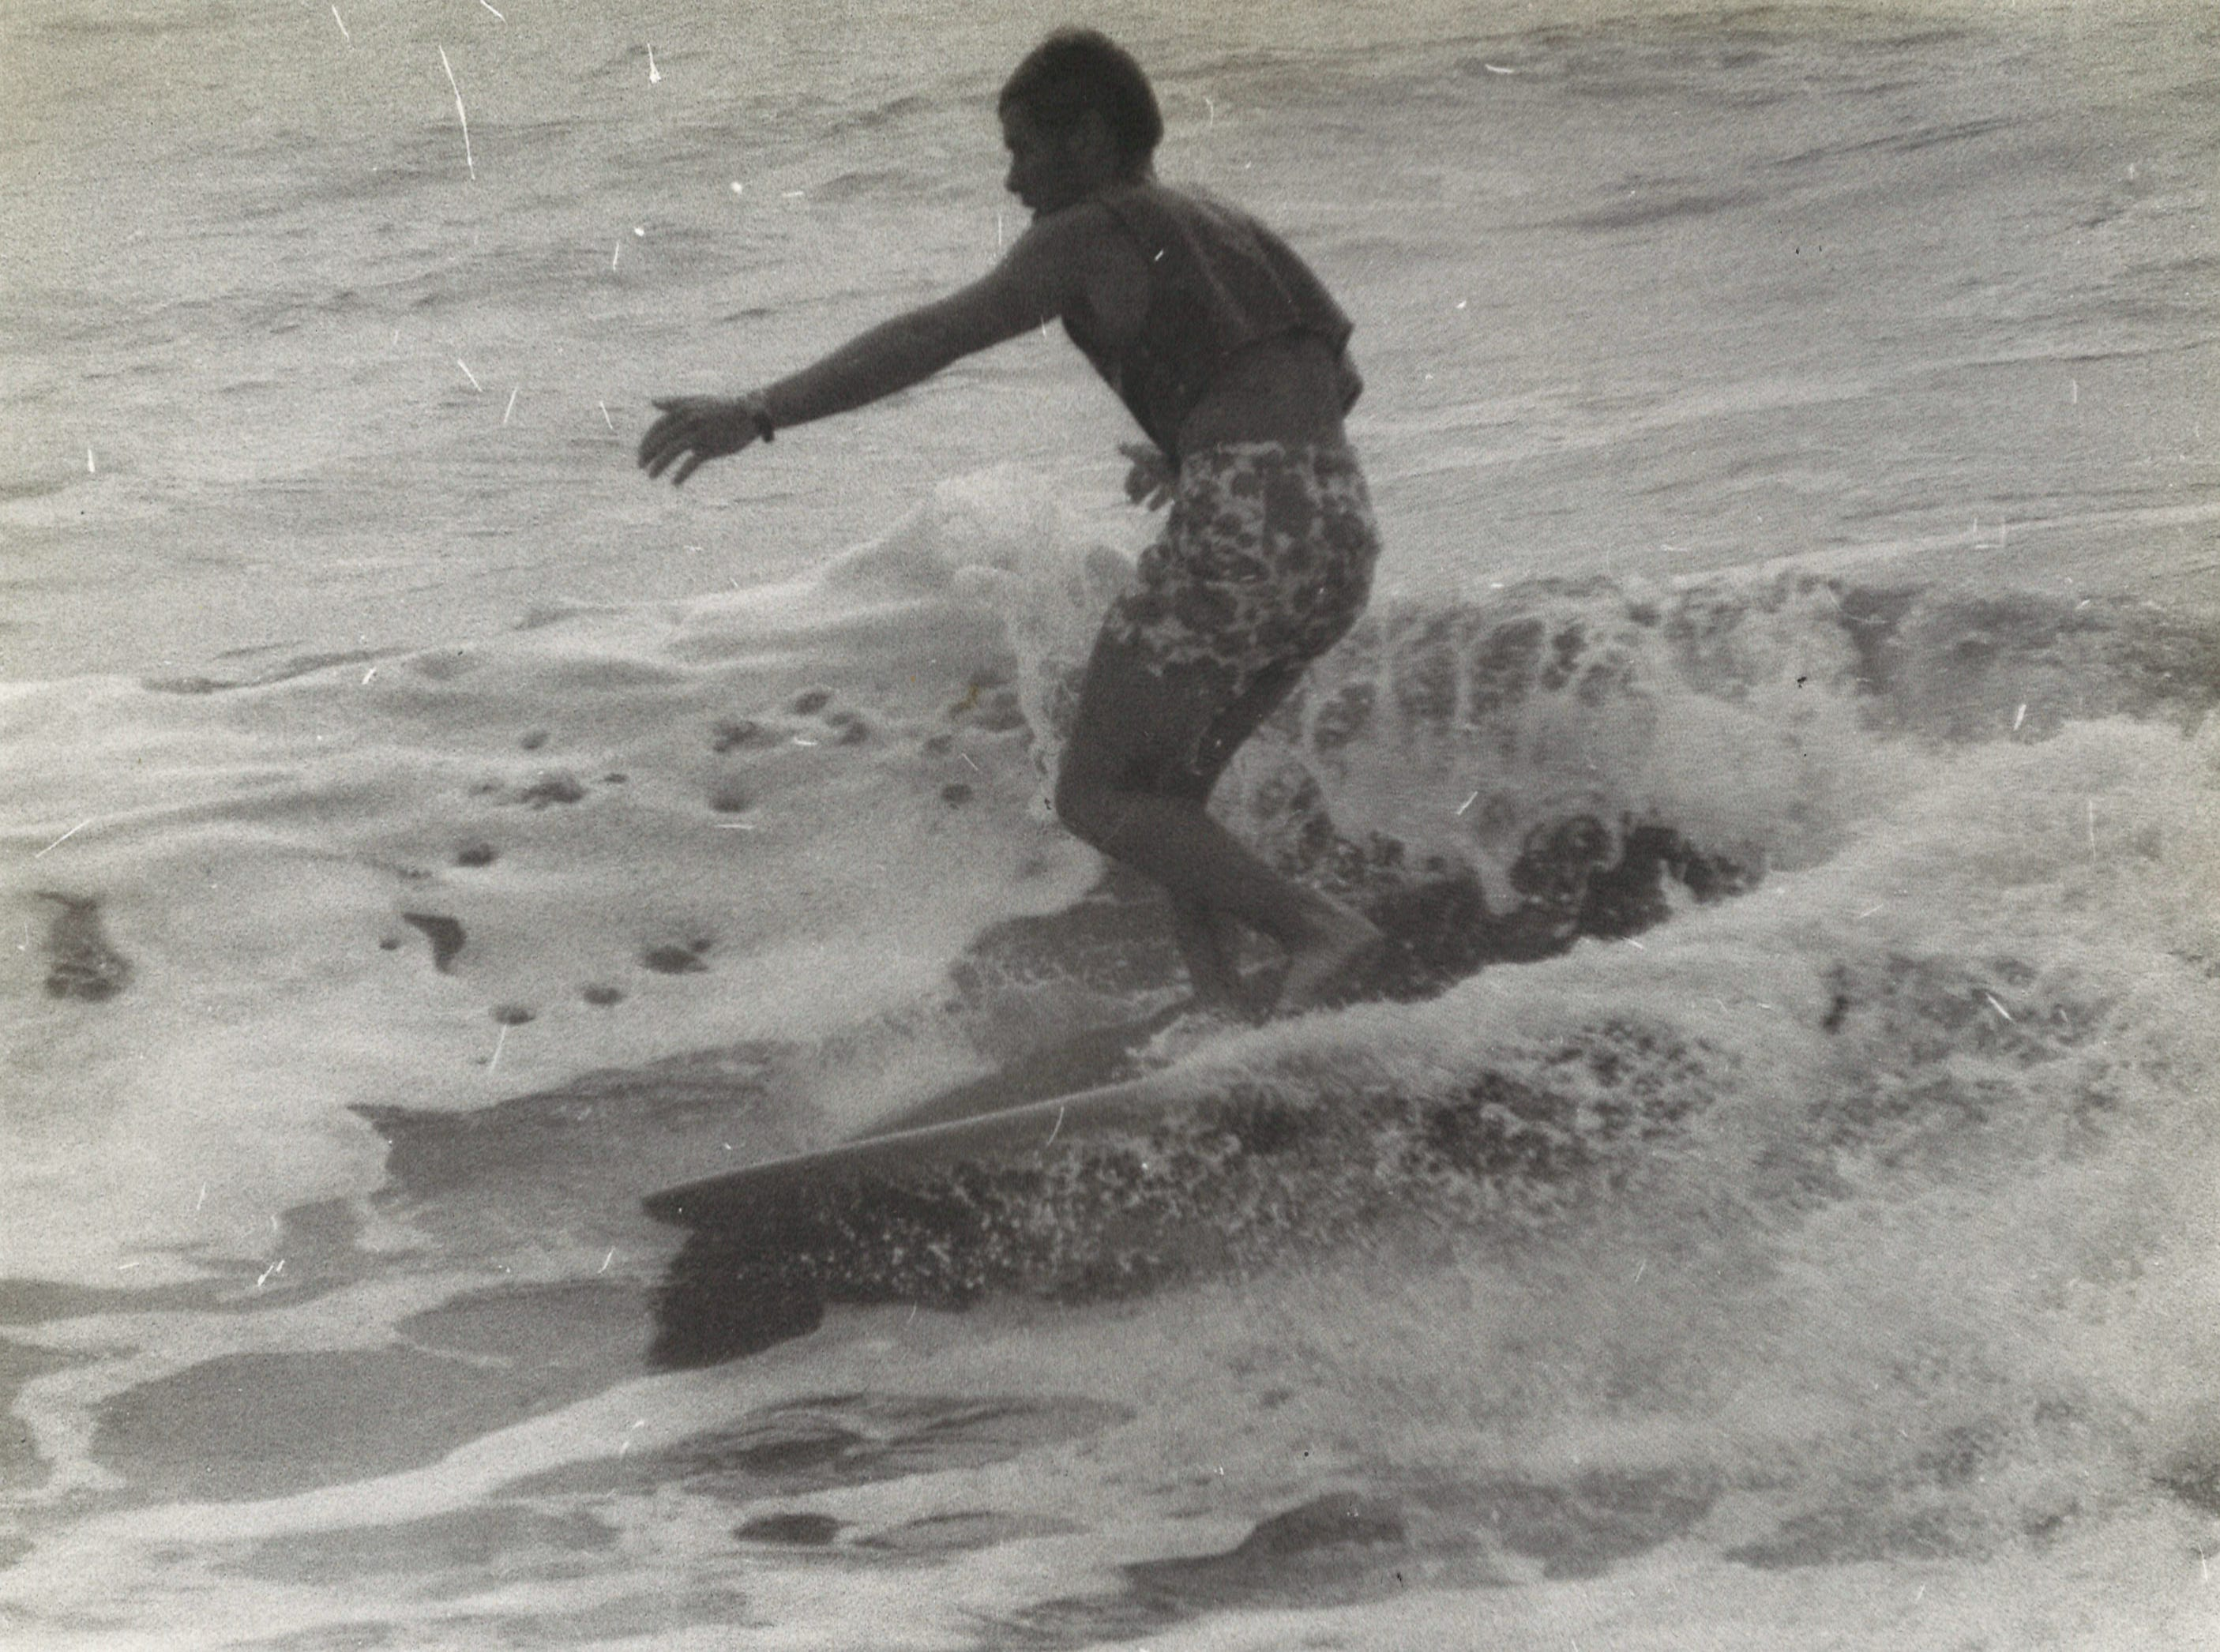 An unidentified surfer in Corpus Christi in April 1968.